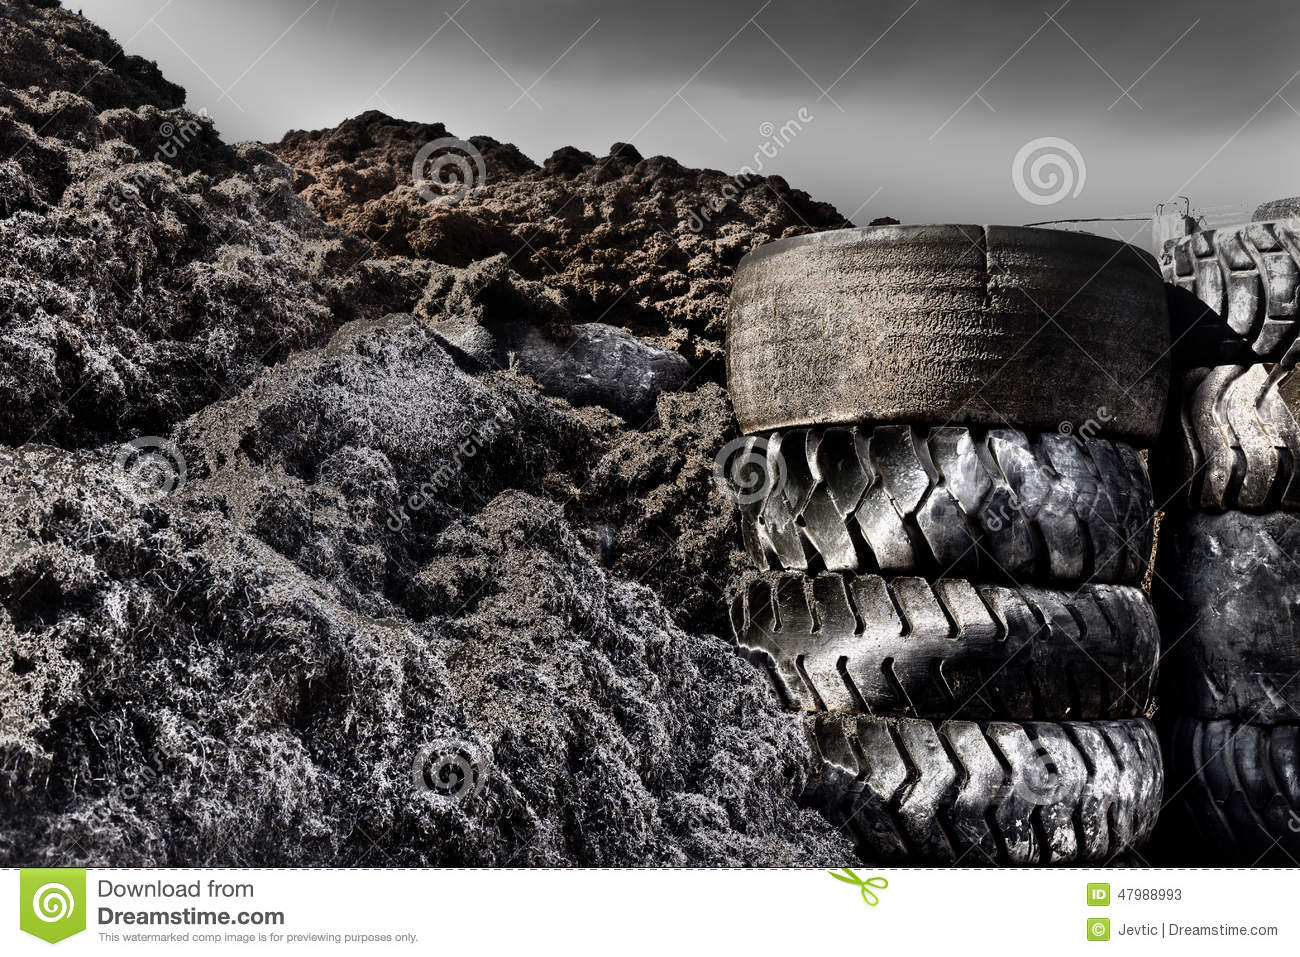 tire recycling industry Sc's growing tire manufacturing industry generate off-spec production tires for recycling in addition to scrap tires generated by retailers, fleets and residents south carolina reaps the benefit by recycling these tires and manages ongoing concerns such as scrap tire piles.